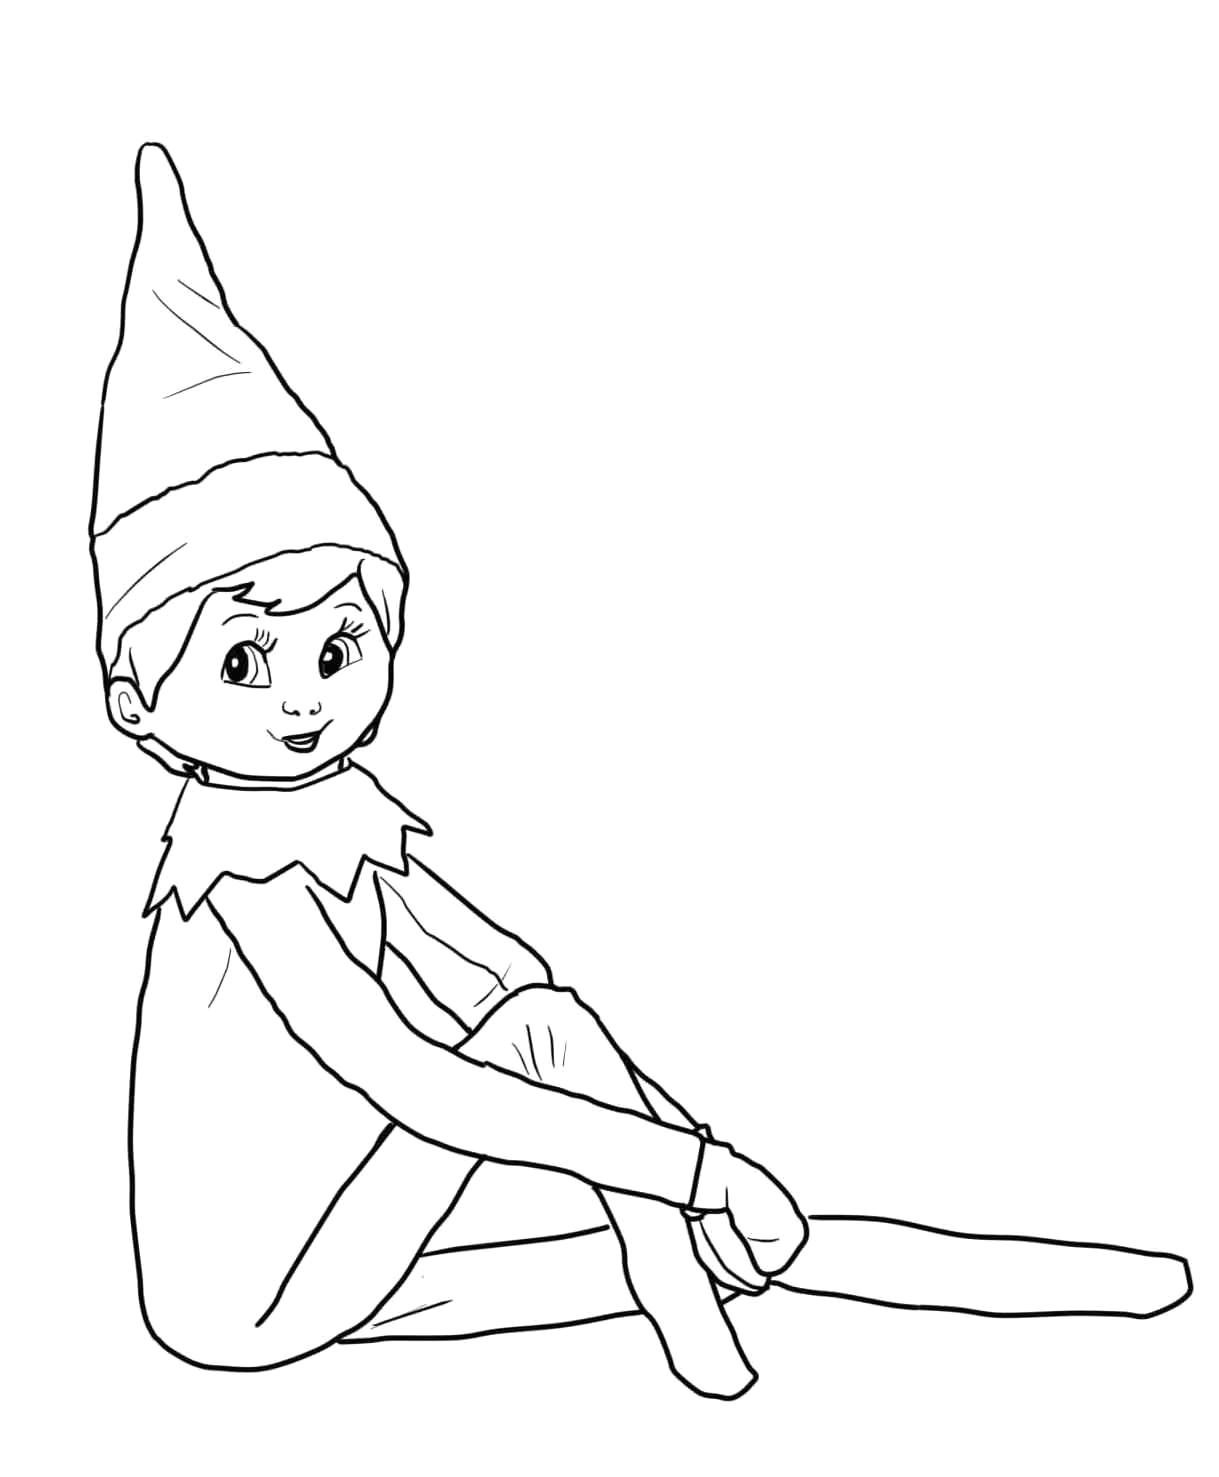 Elf On the Shelf Printable Coloring Pages Free Coloring Pages Of Christmas Elf On the Shelf Coloring